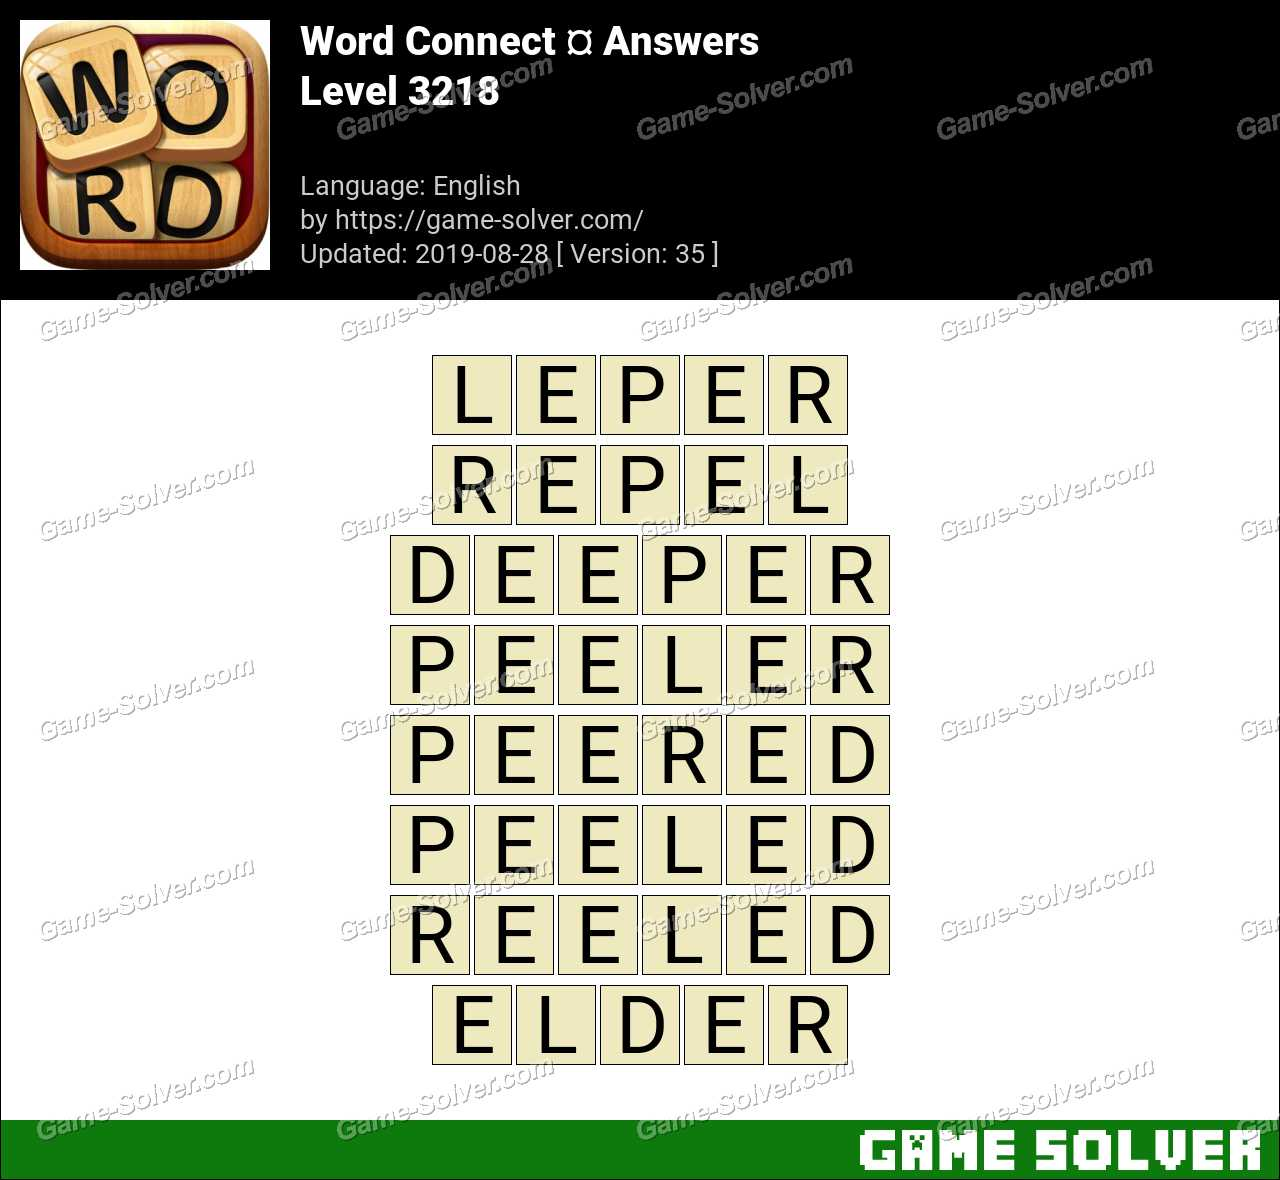 Word Connect Level 3218 Answers